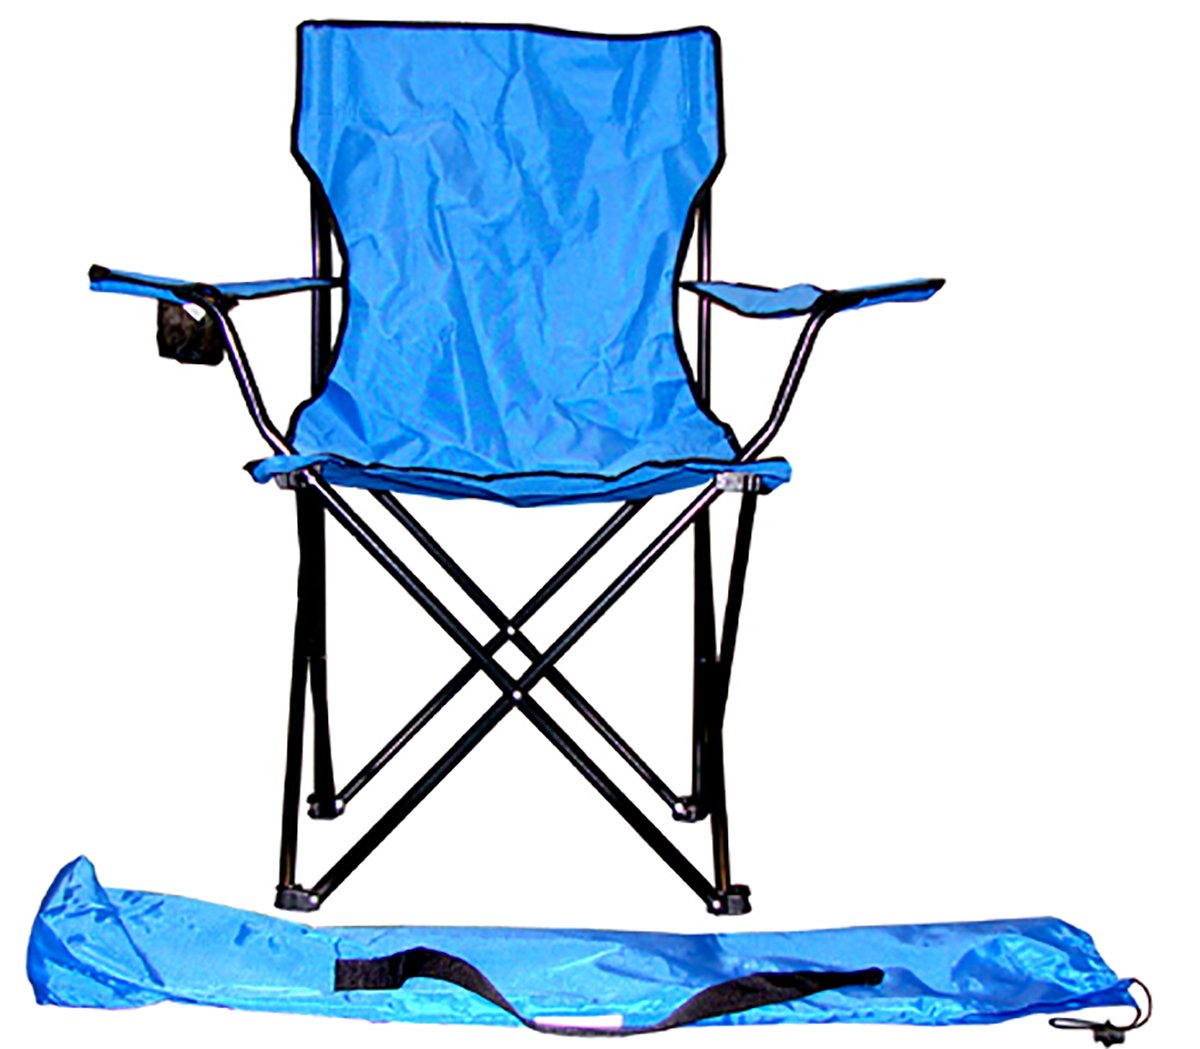 VMI Folding Chair with Cupholder